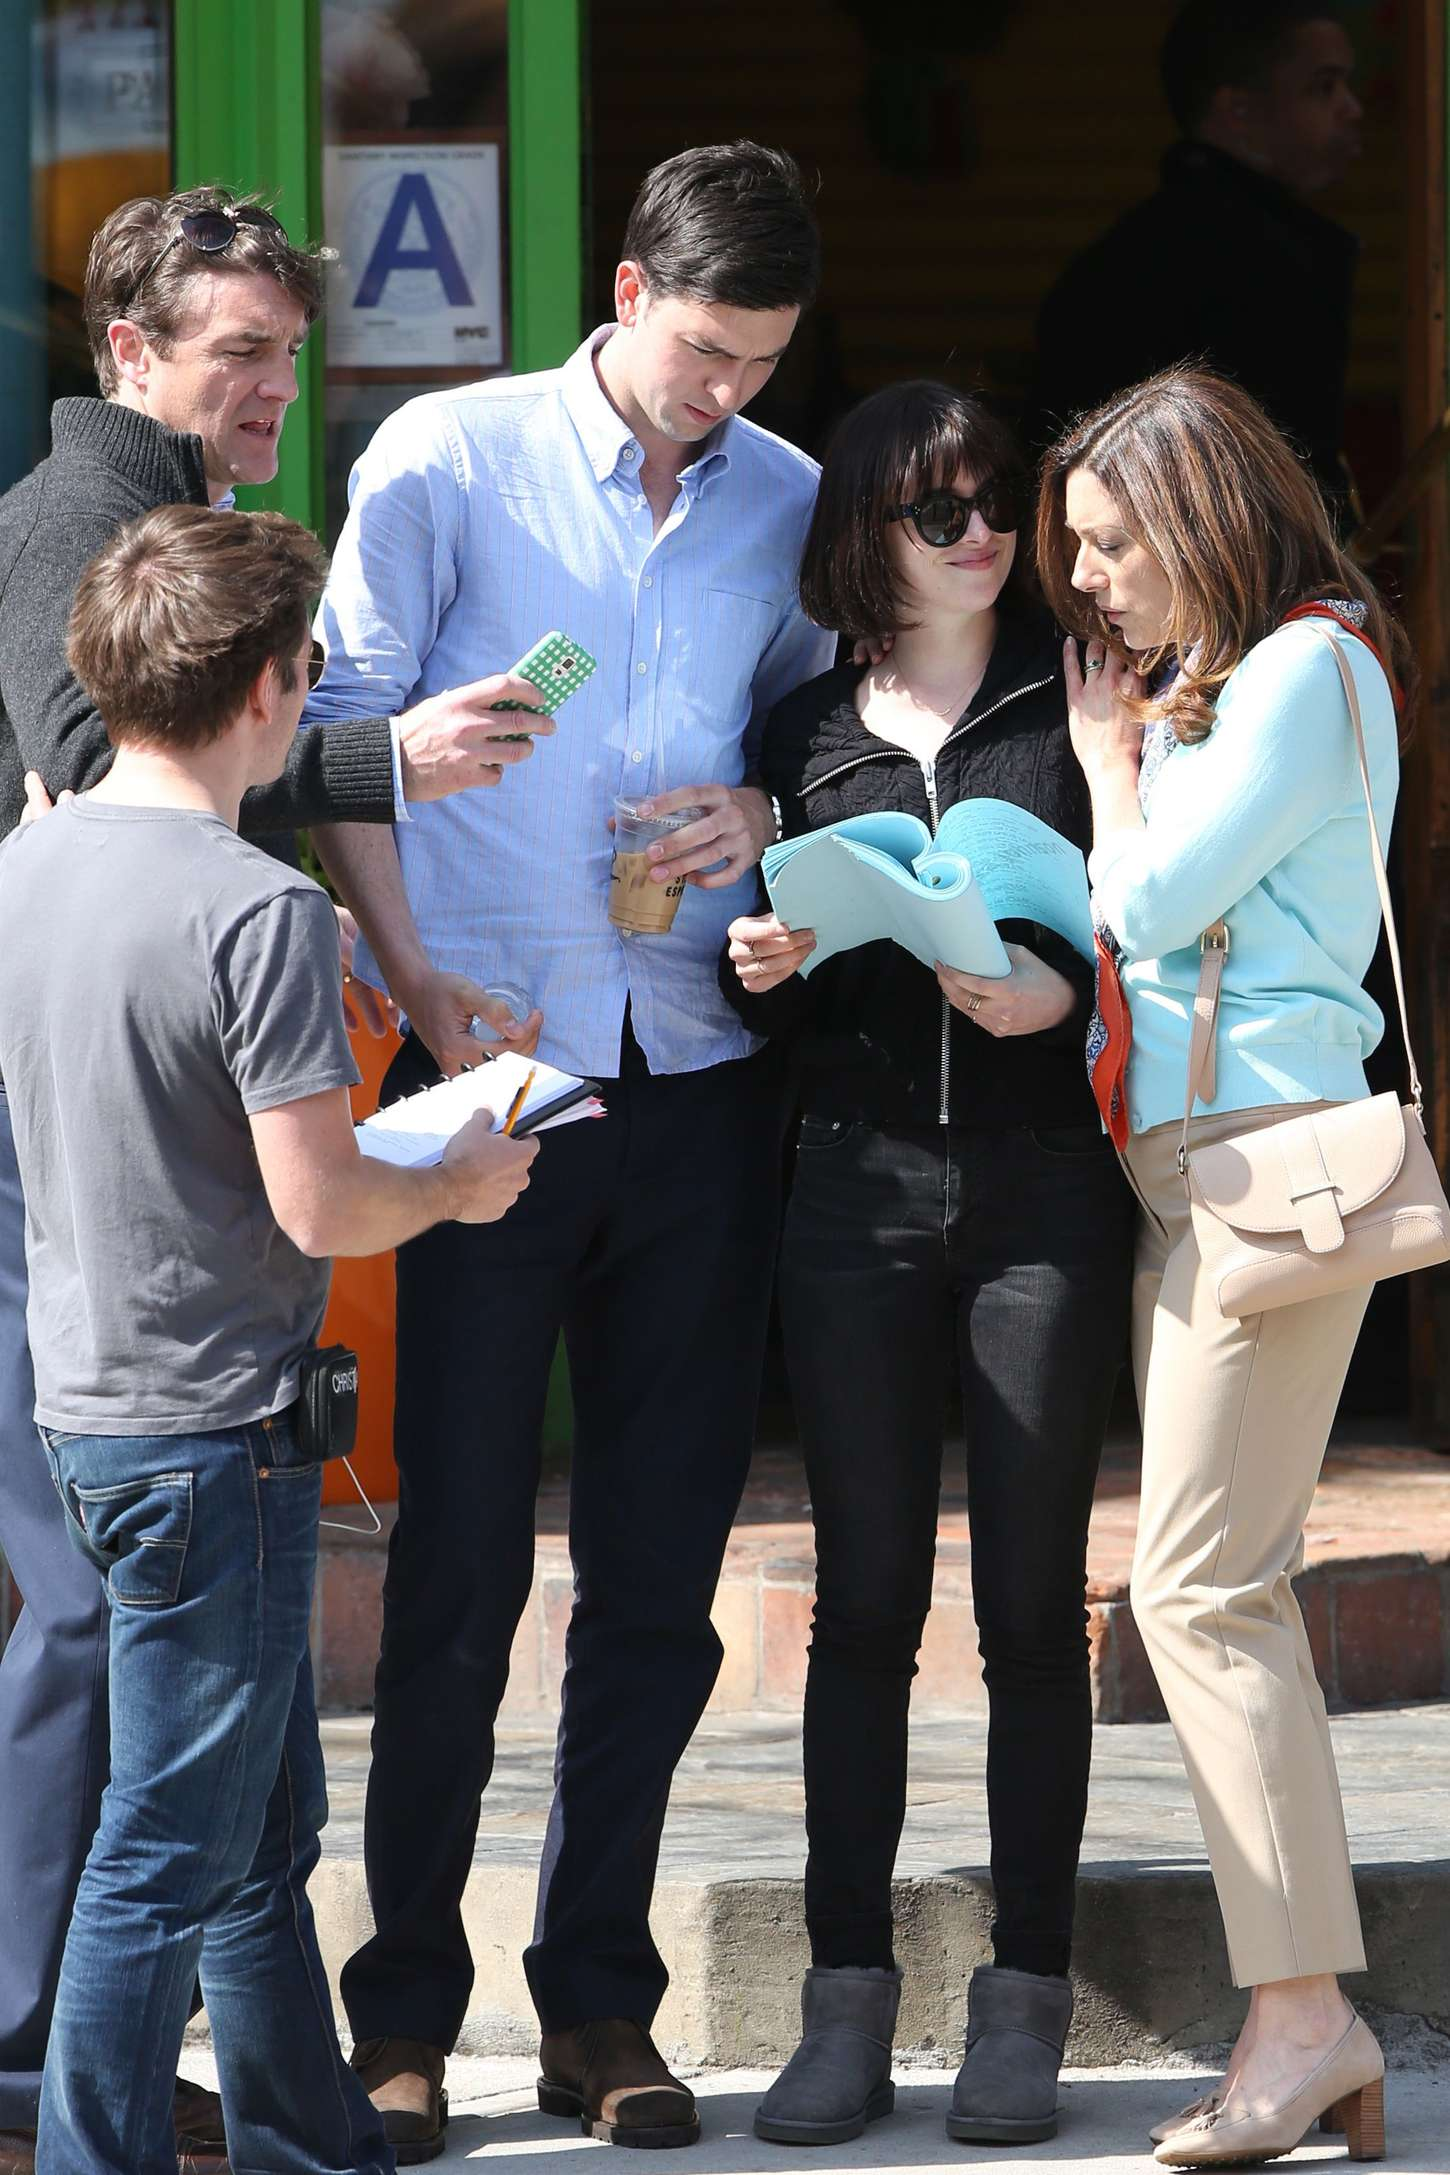 Dakota Johnson In Tight Jeans On How To Be Single Set 23 Dakota Johnson In  Tight